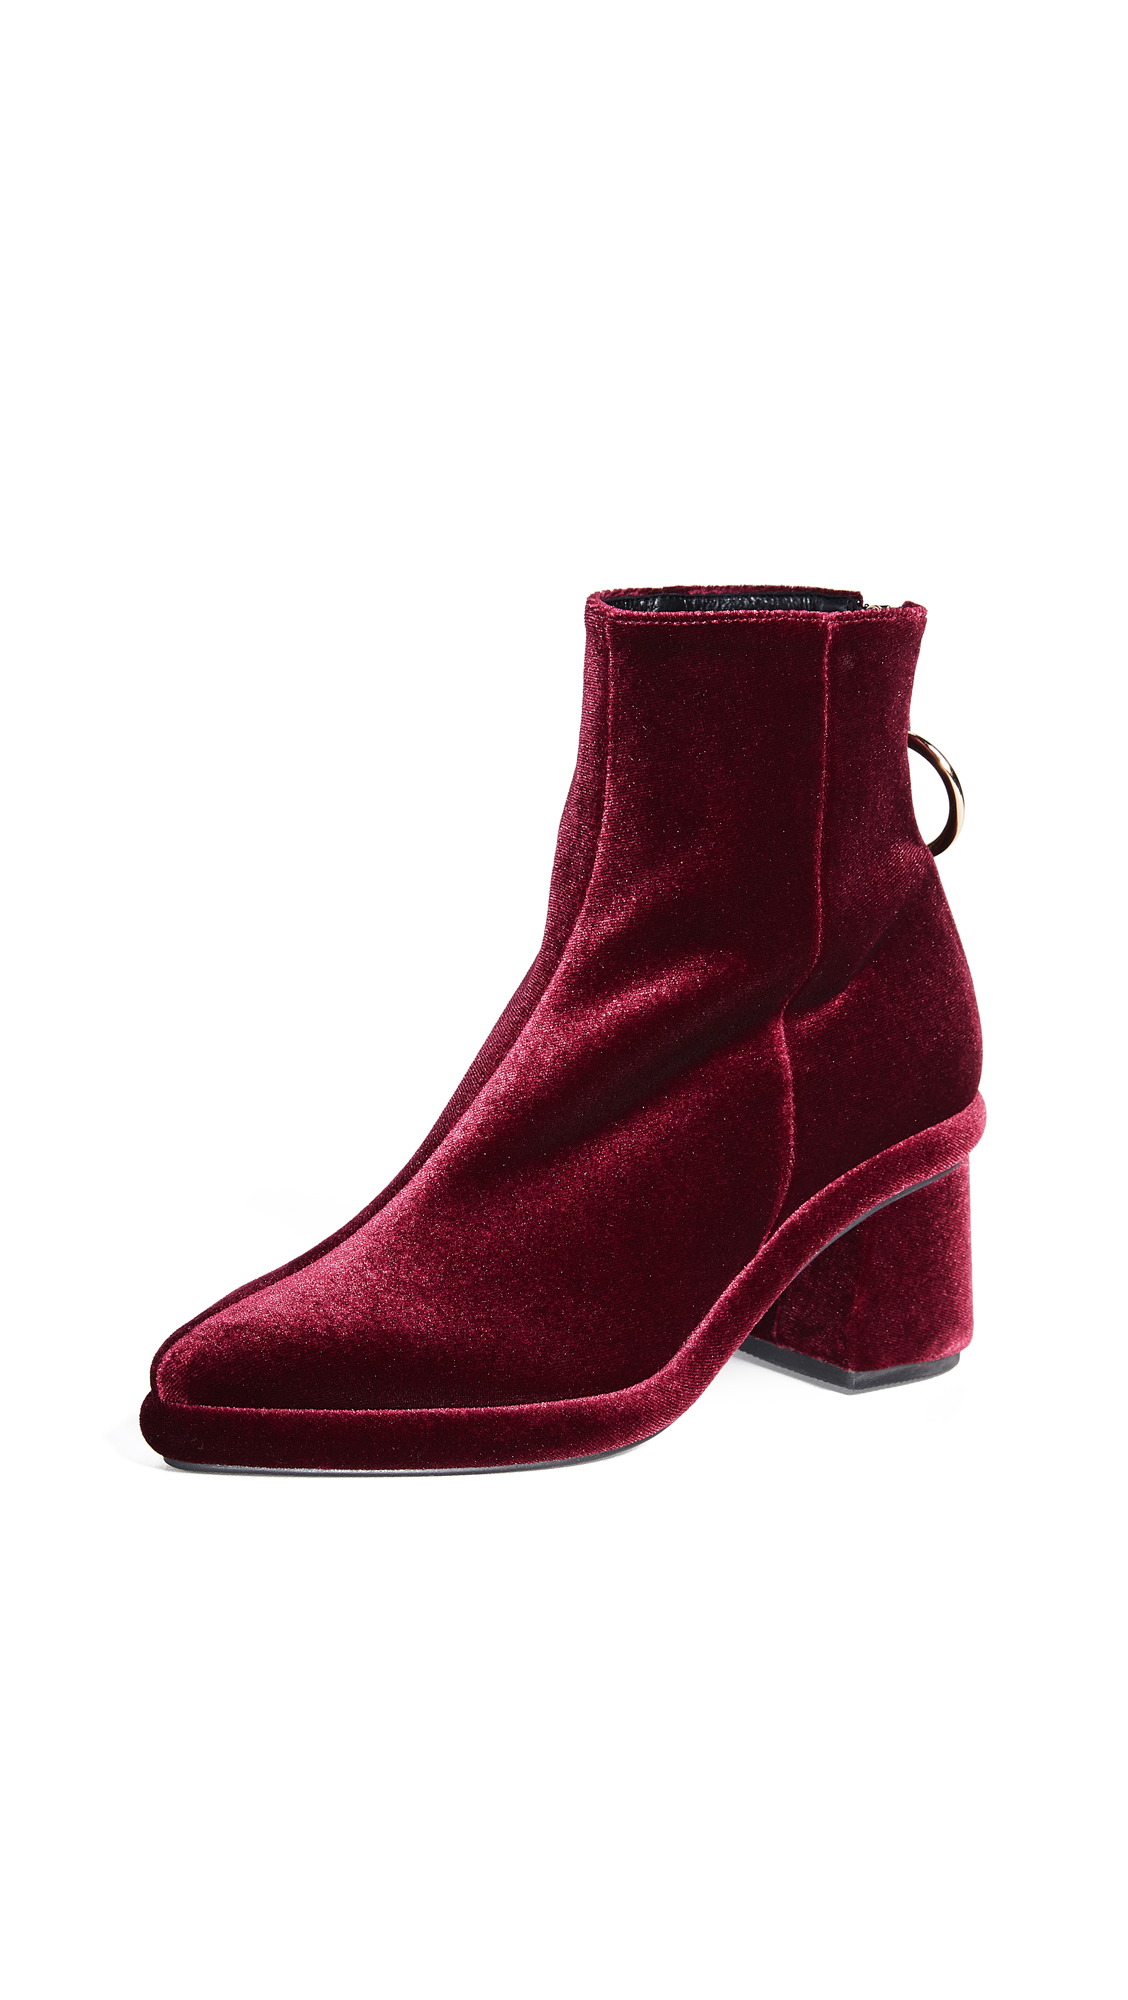 Reike Nen Ring Slim Booties - Burgundy